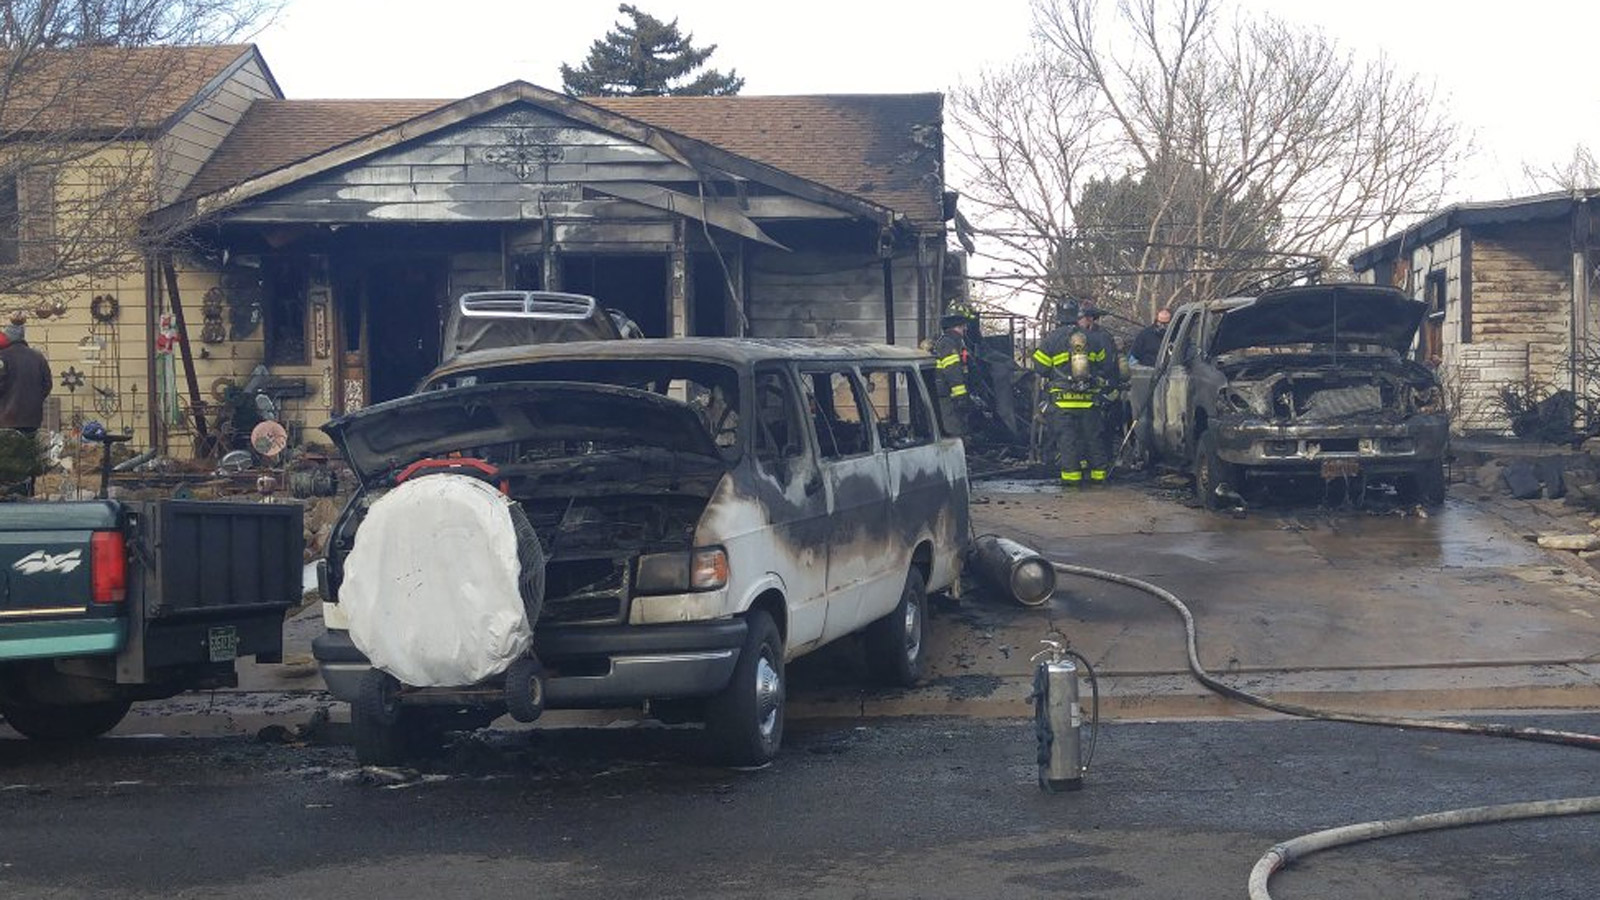 The explosions and fire also damaged two vehicles at the home on Yuma Street (credit: CBS)